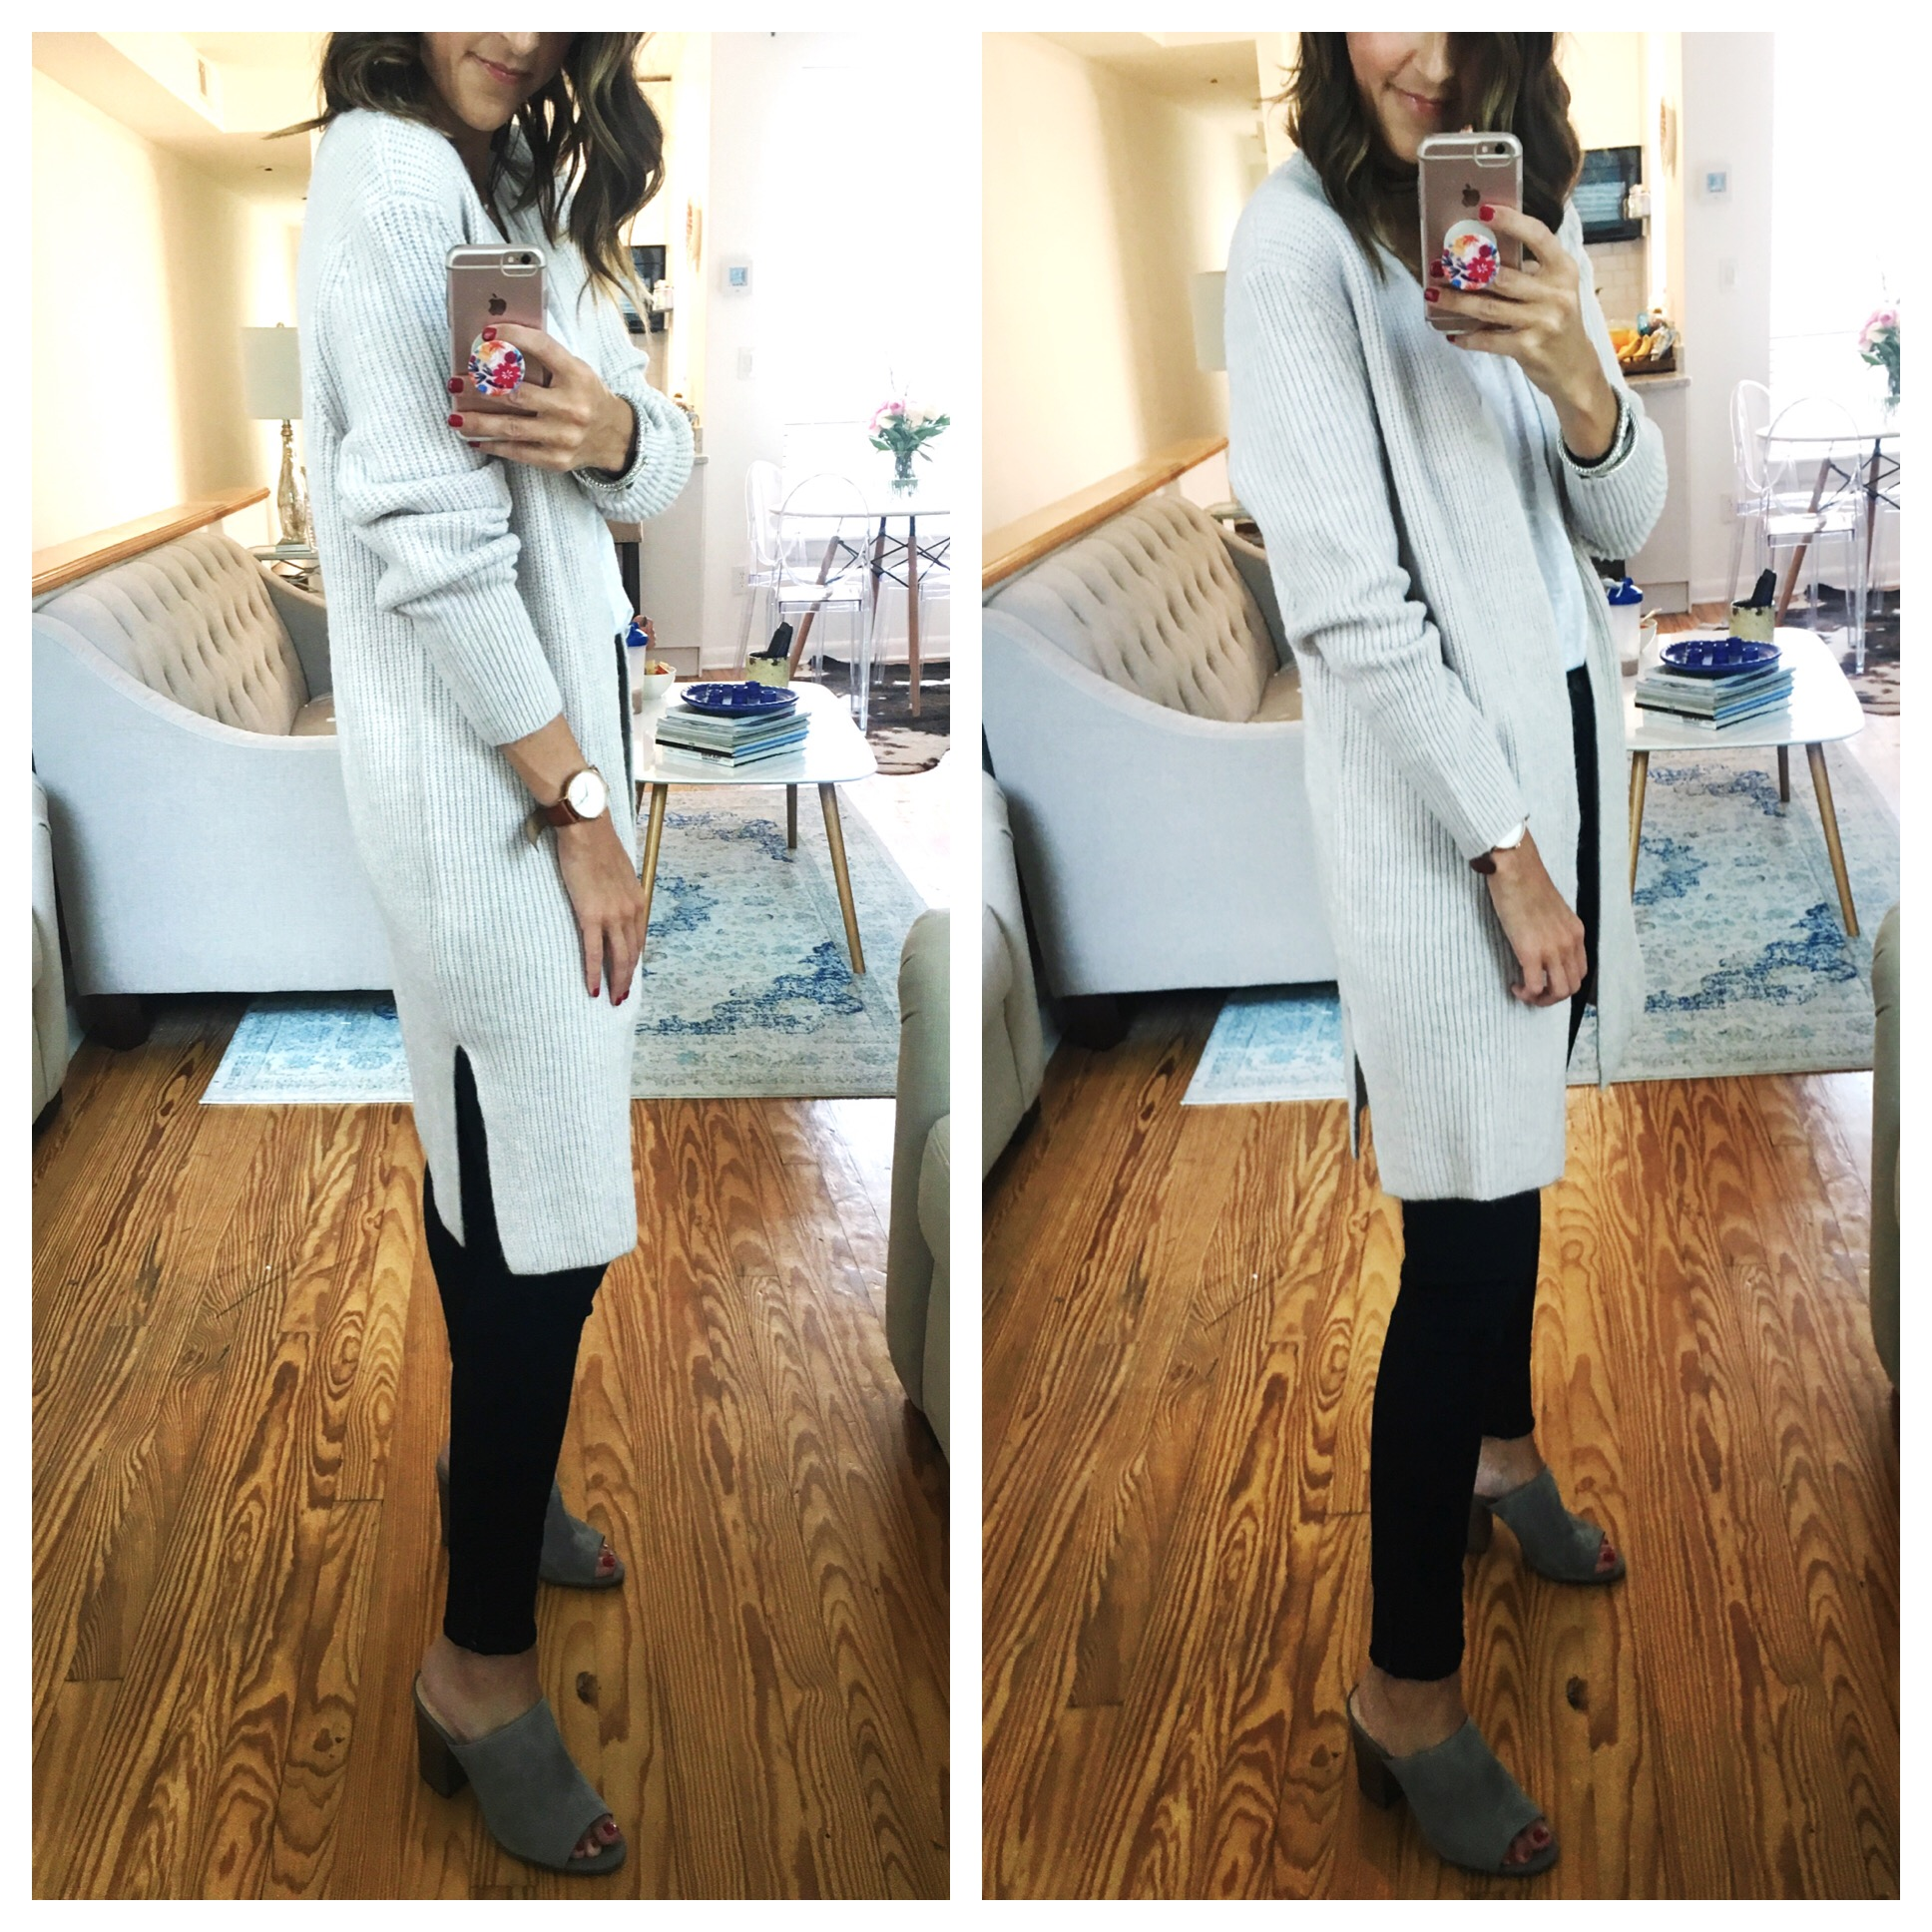 Long, Cozy Cardigan - Nordstrom Anniversary Sale Try On Session by popular Washington DC style blogger Cobalt Chronicles